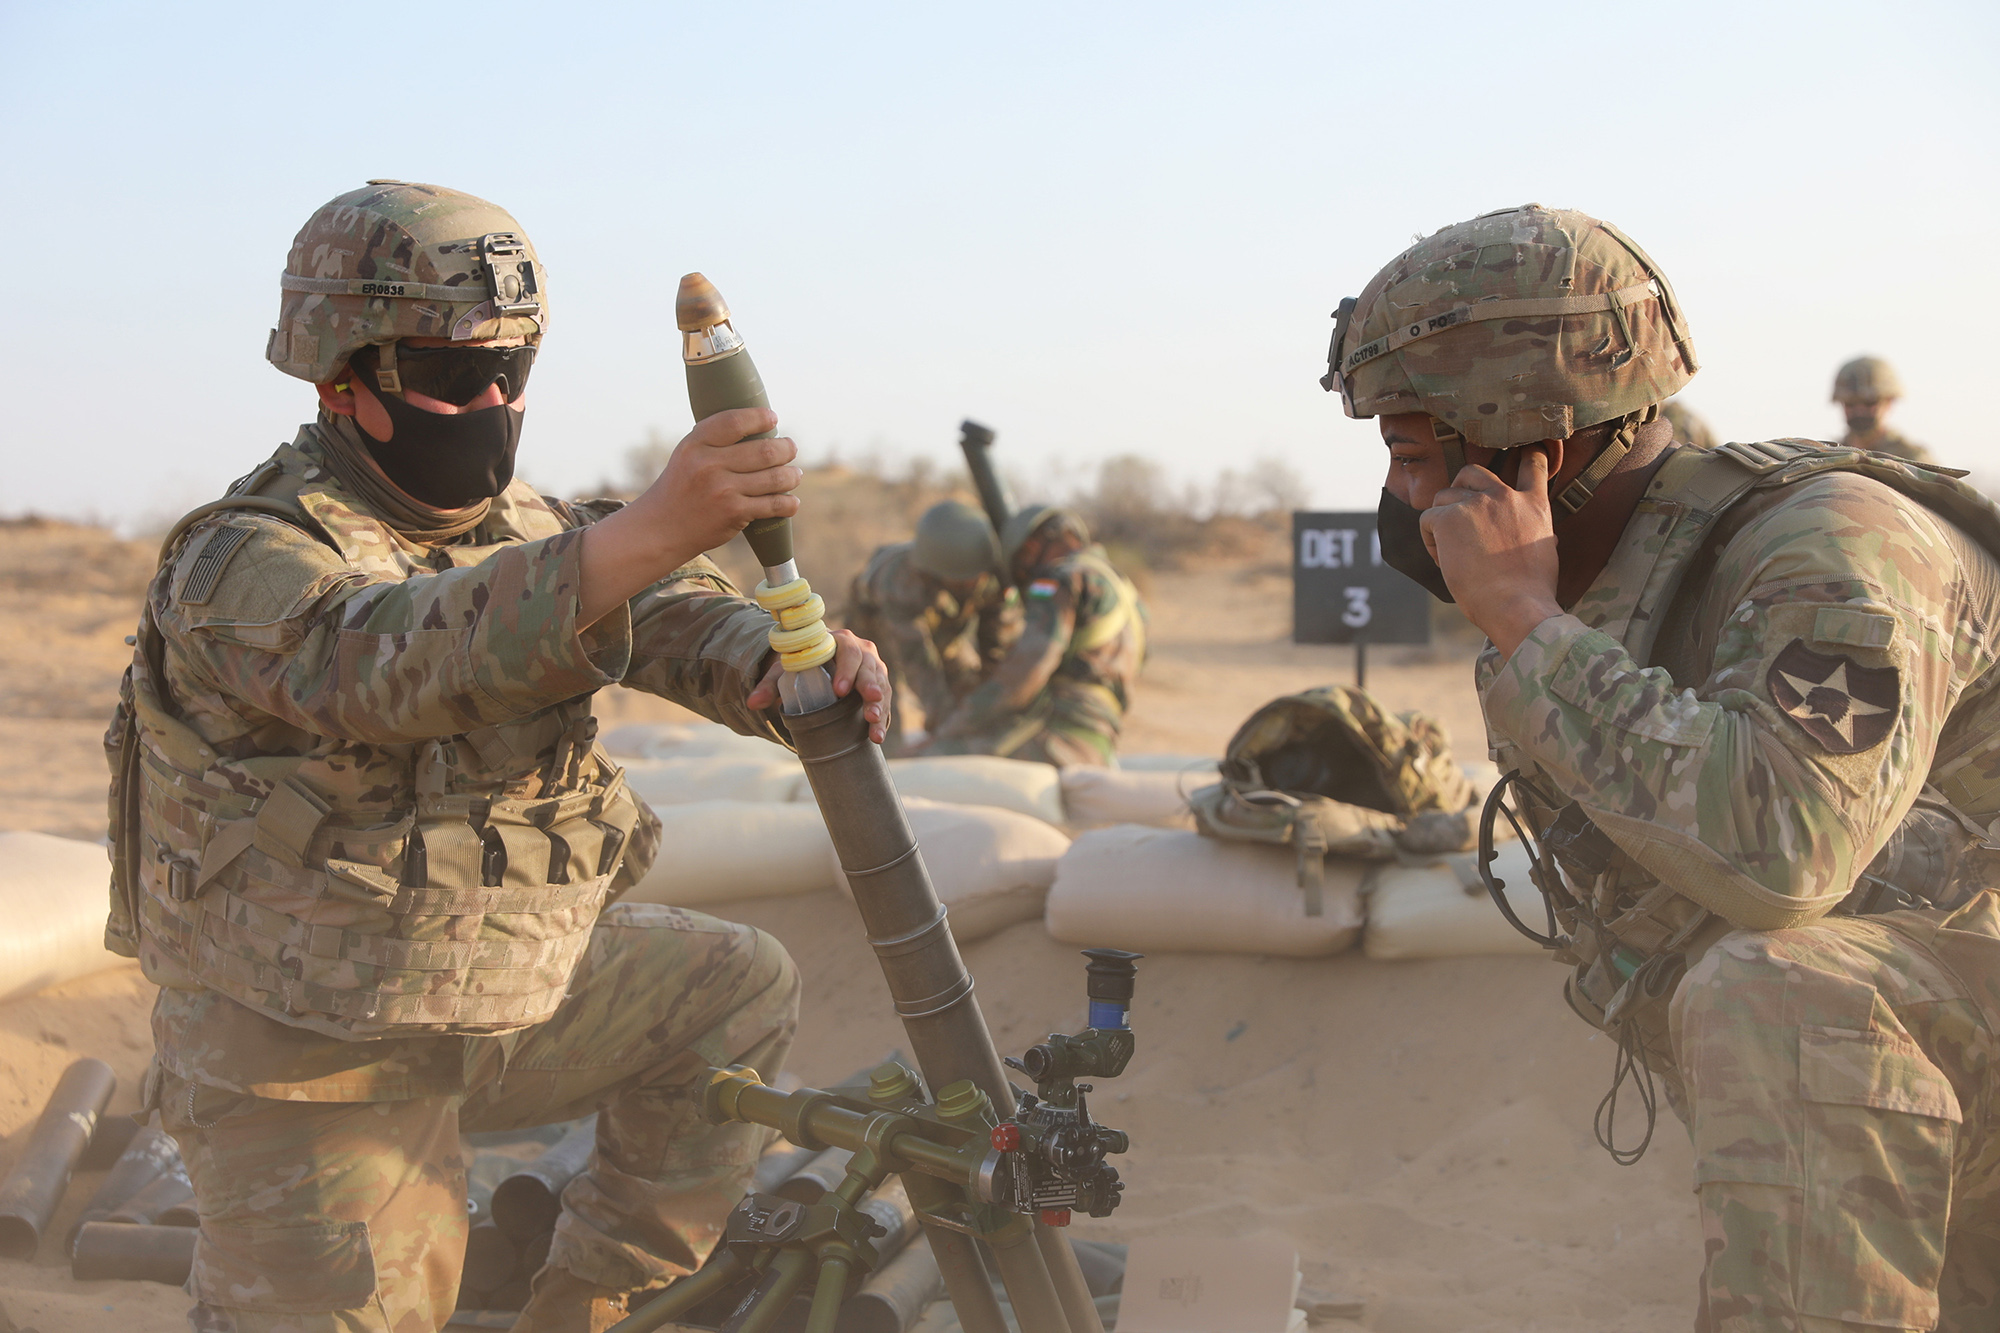 U.S. and Indian soldiers hone skills with various weapons during Exercise Yudh Abhyas in India, Feb. 12, 2021. (Staff Sgt. Joseph Tolliver/Army)